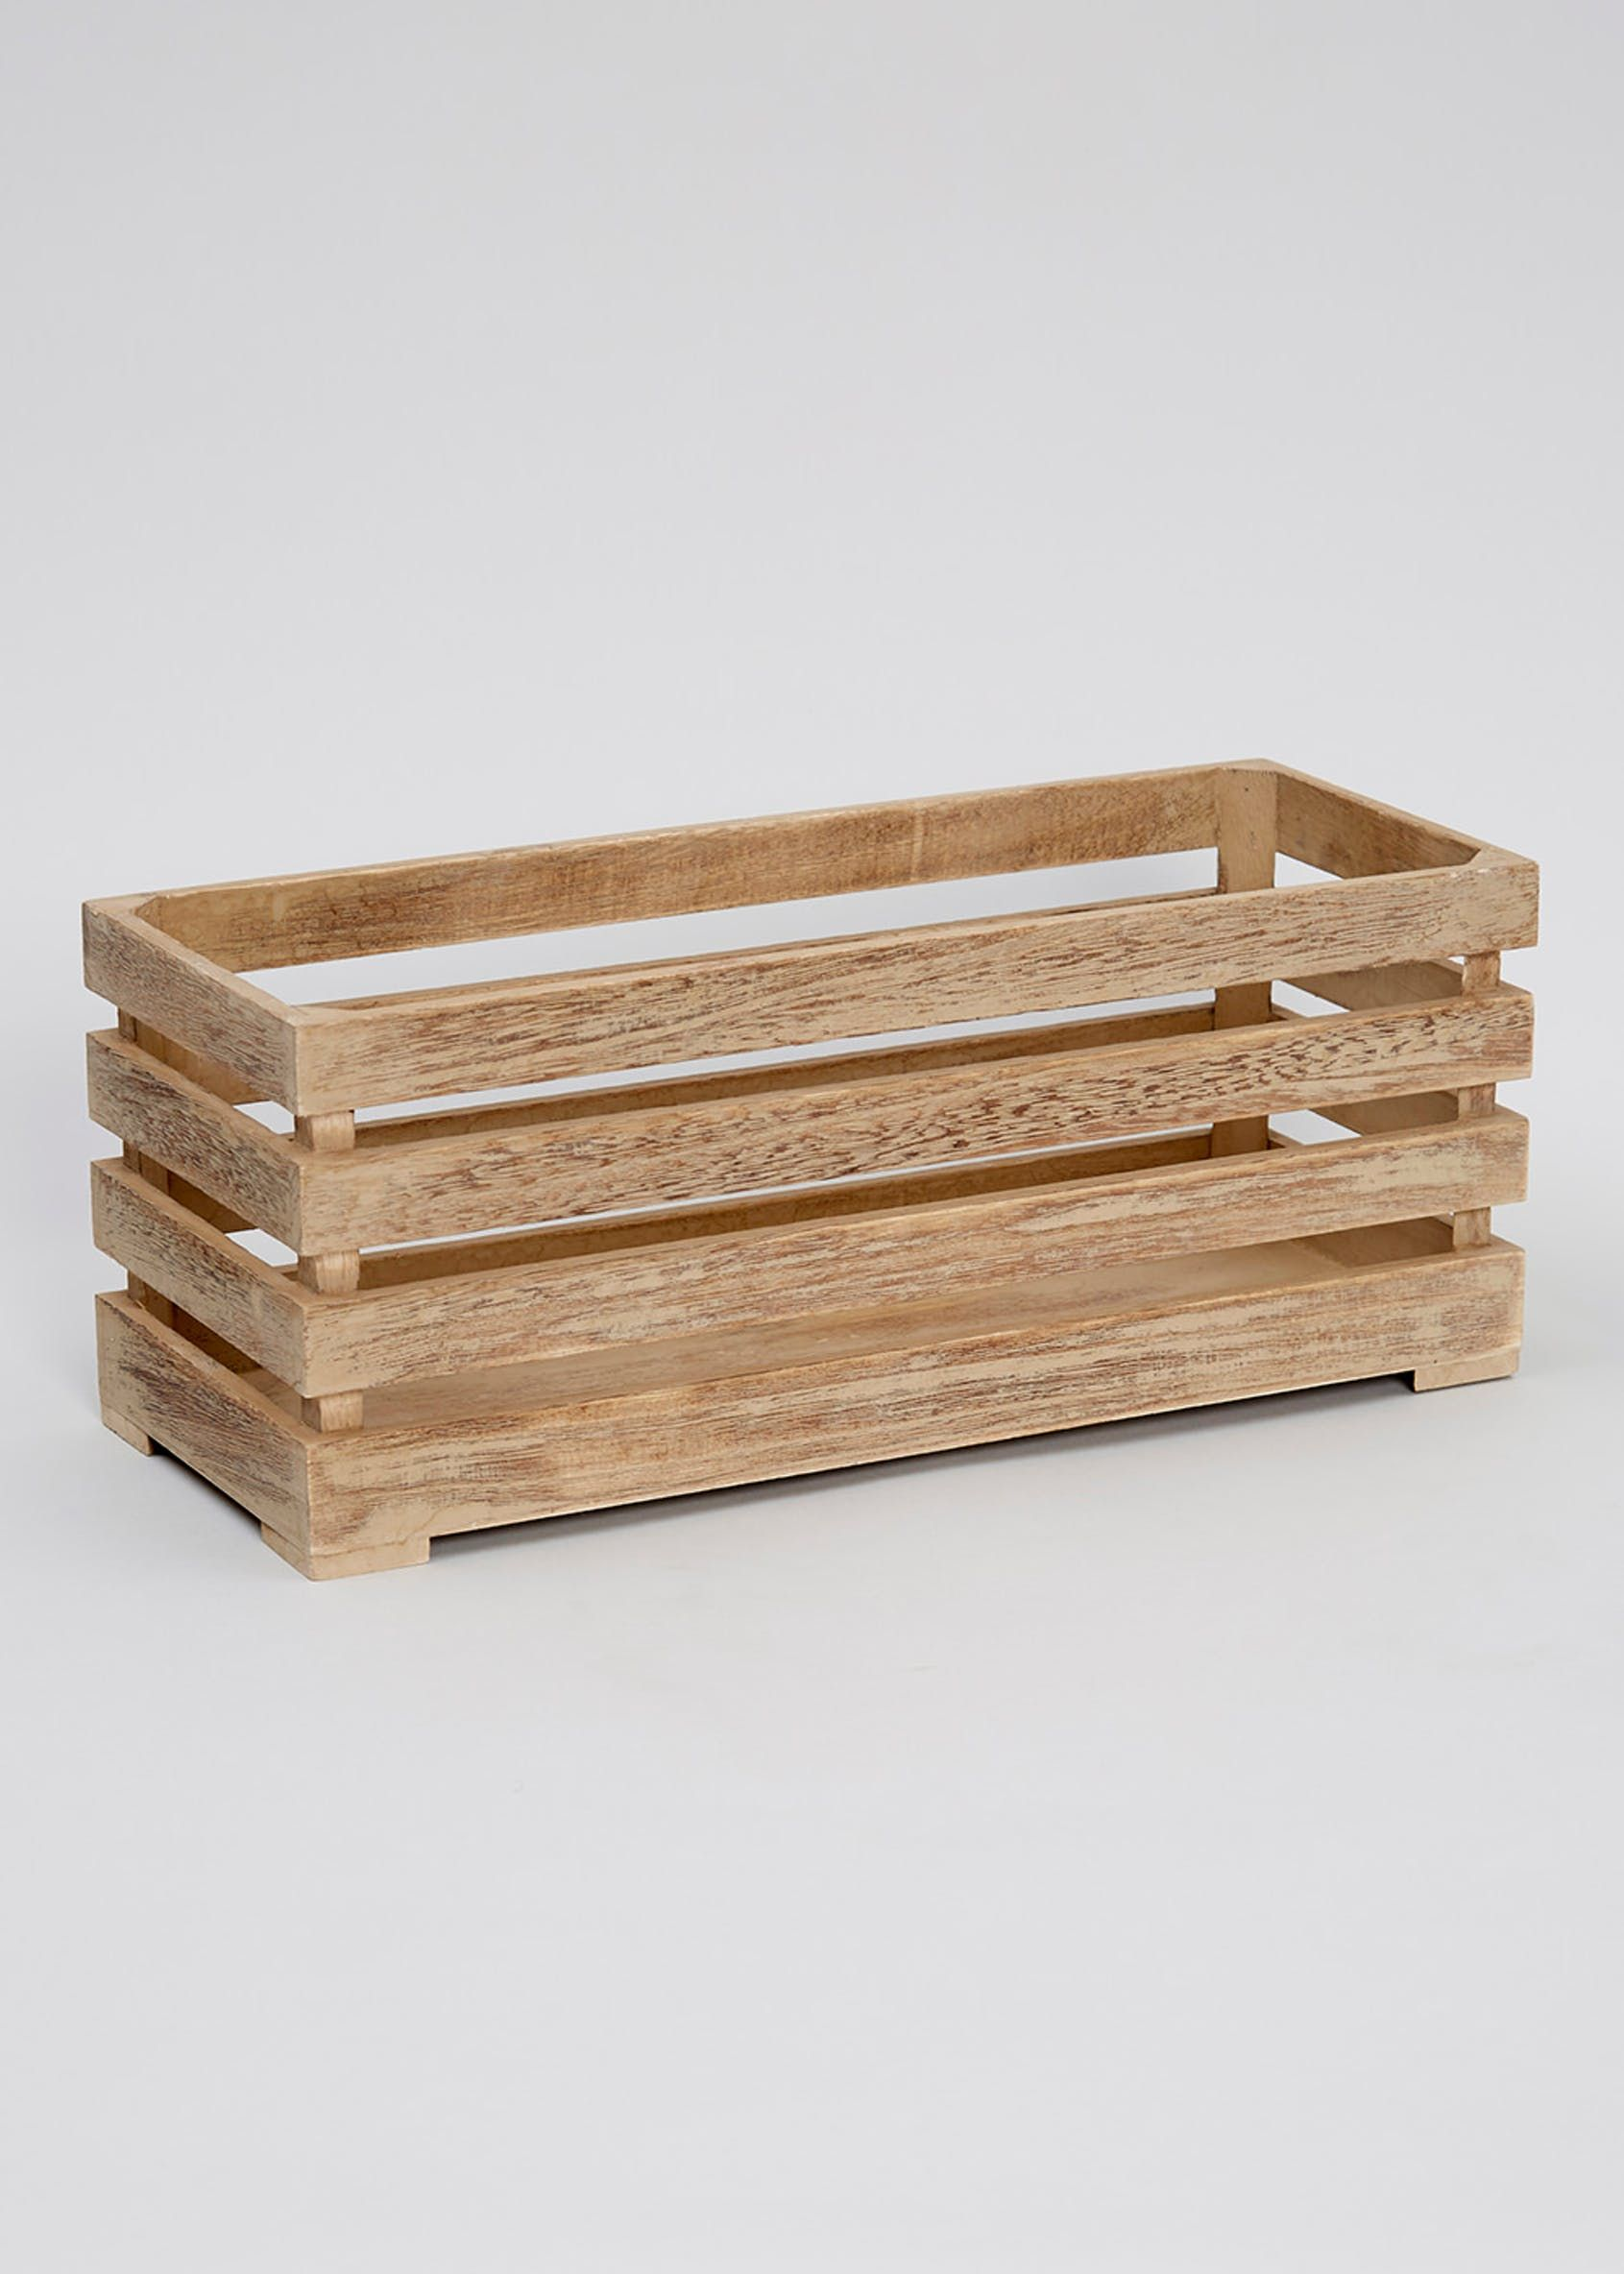 Wooden Storage Crate (38Cm X 15Cm X 15Cm)